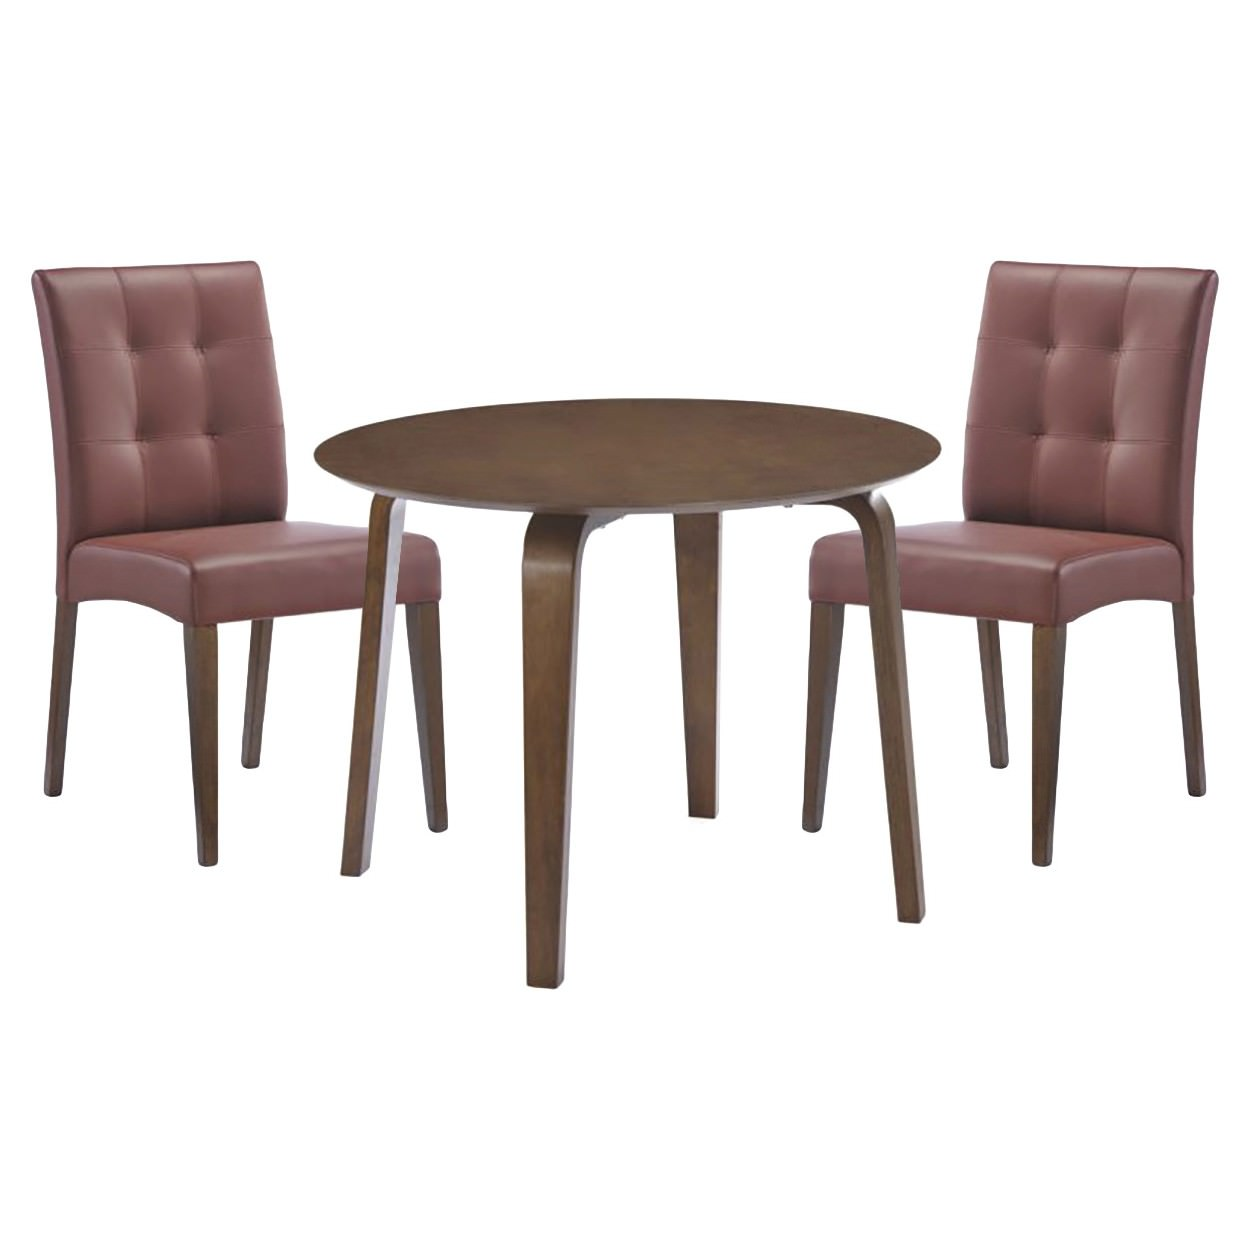 Swiss 5 Piece Rubberwood Timber Round Dining Table Set, 100cm